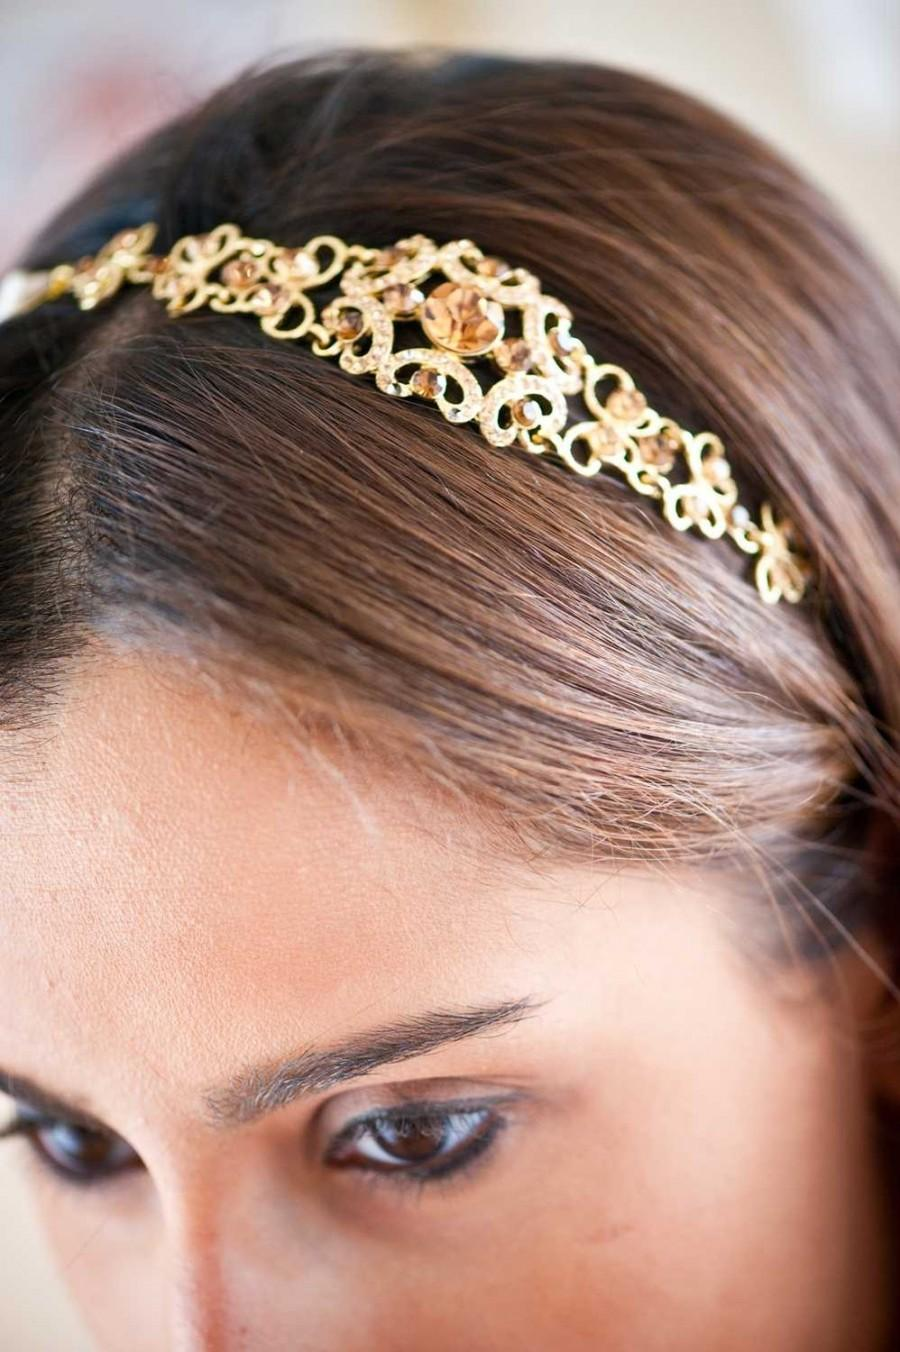 Wedding - Bridal Headband - Bridal Headpiece - Crystal Headband - Crystal Headpiece - Wedding Headband - Wedding Headpiece - Prom Headband - SOPHIA